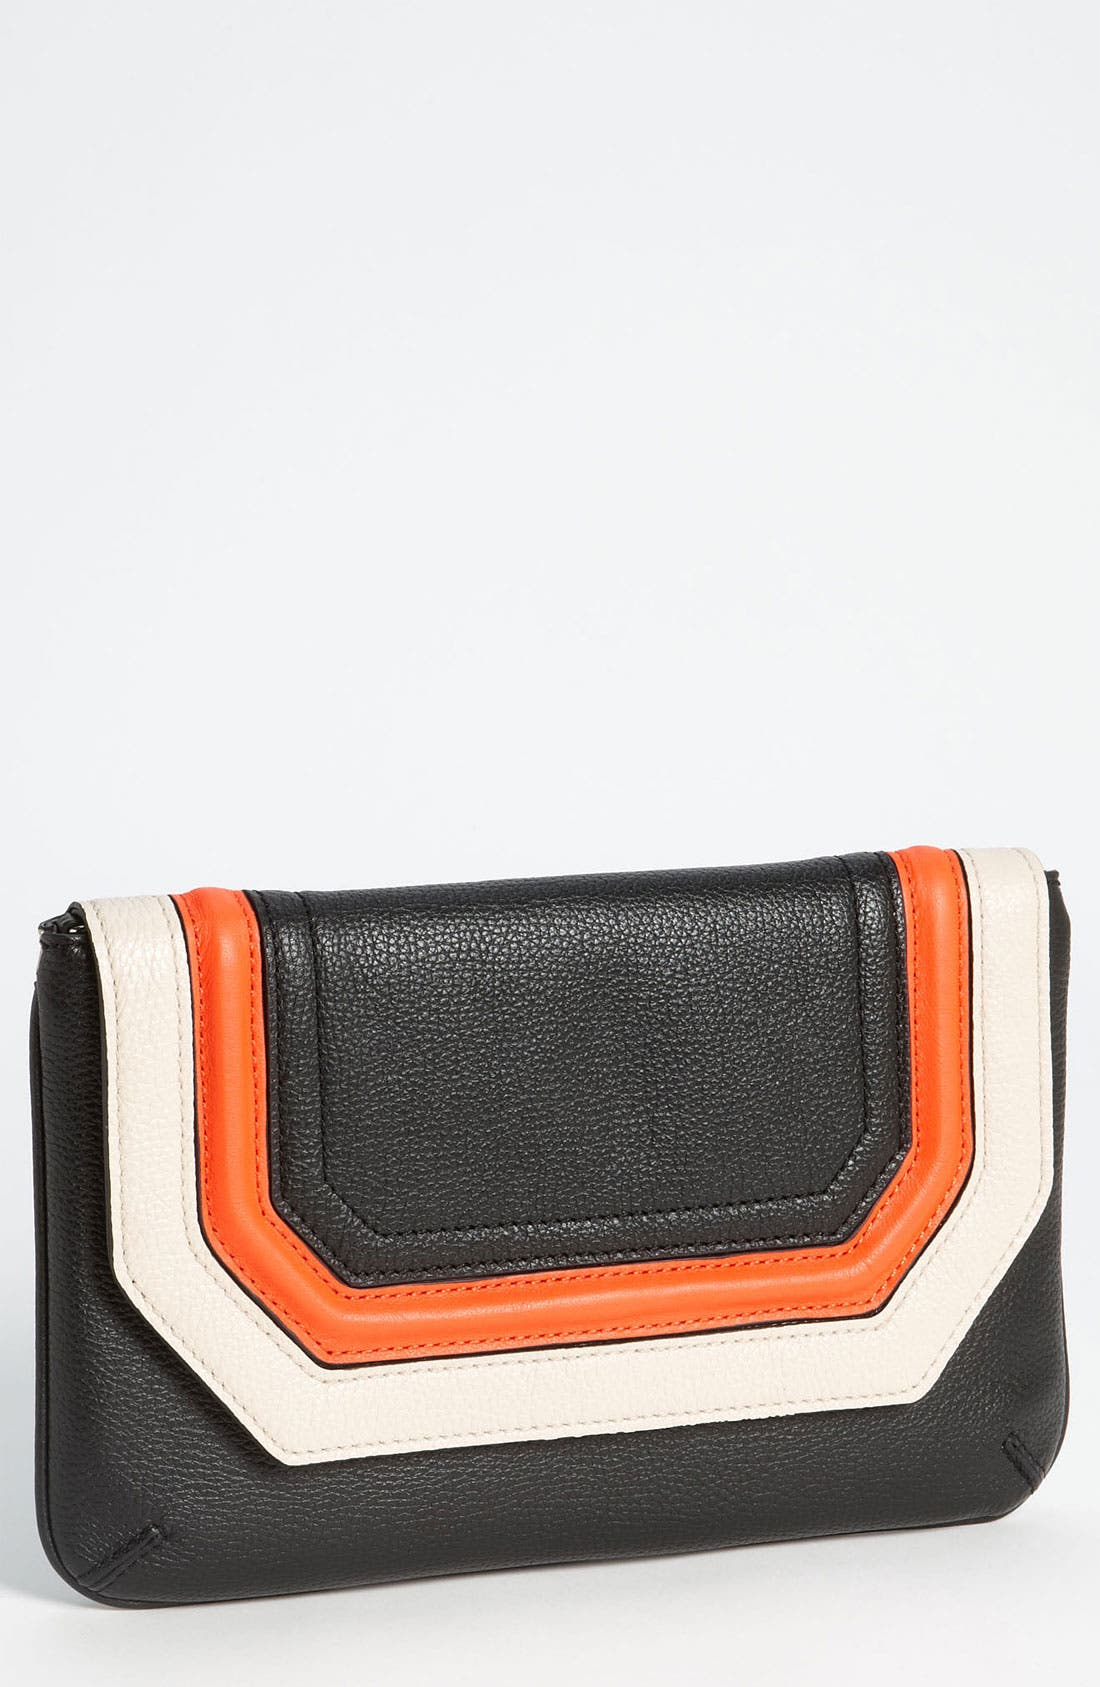 Alternate Image 1 Selected - Milly 'Zoey' Clutch